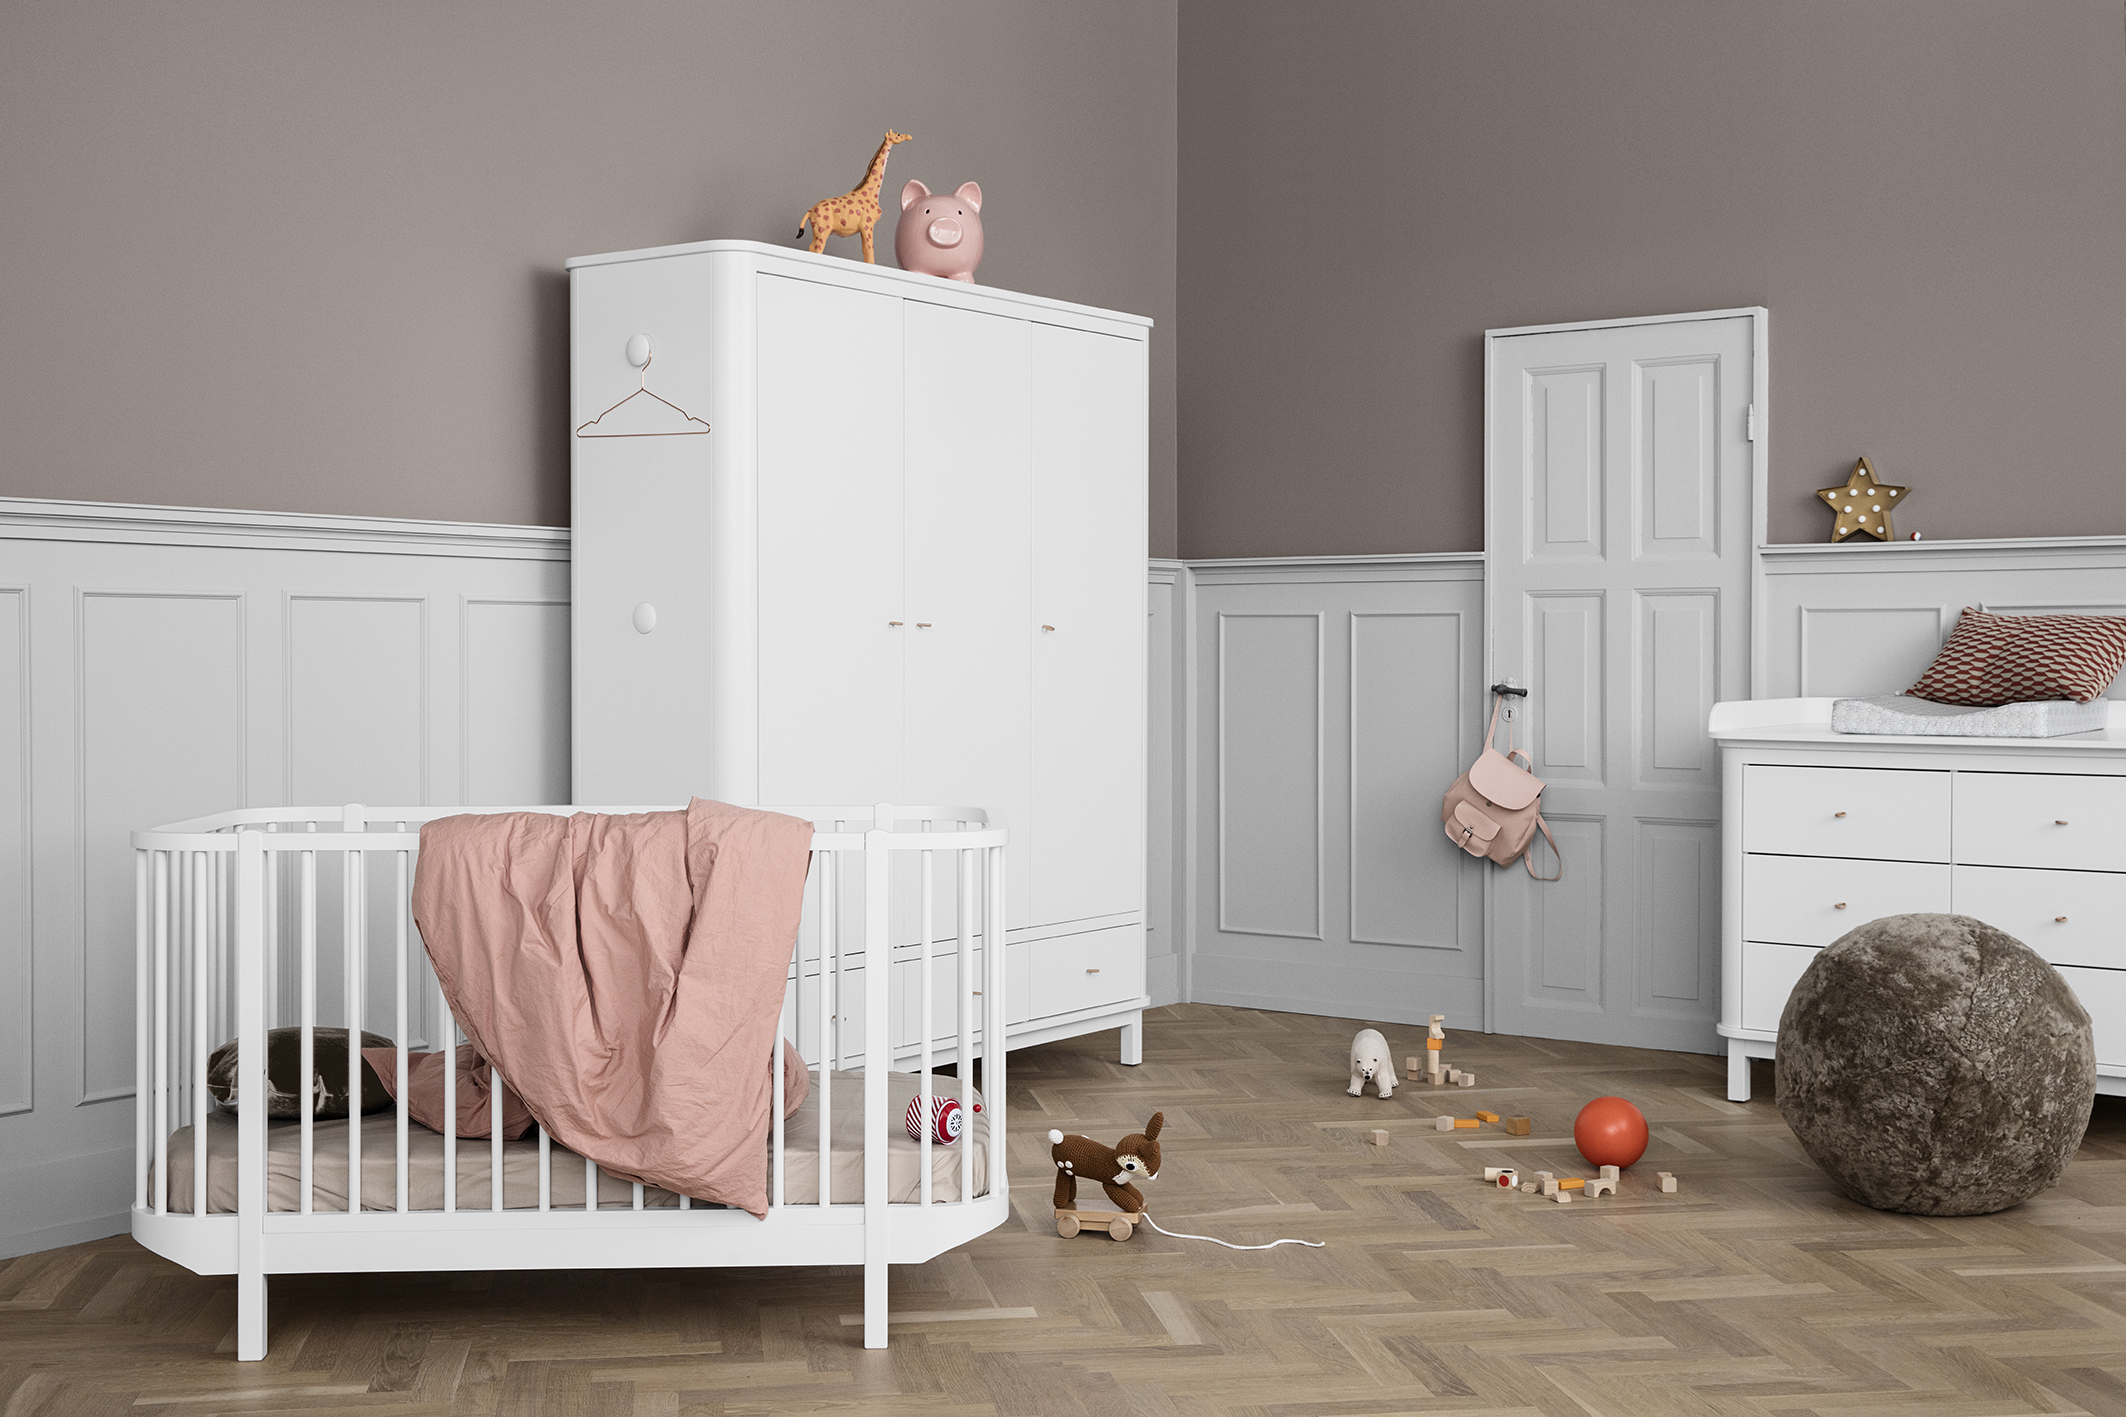 oliver-furniture-baby-room-child.jpg